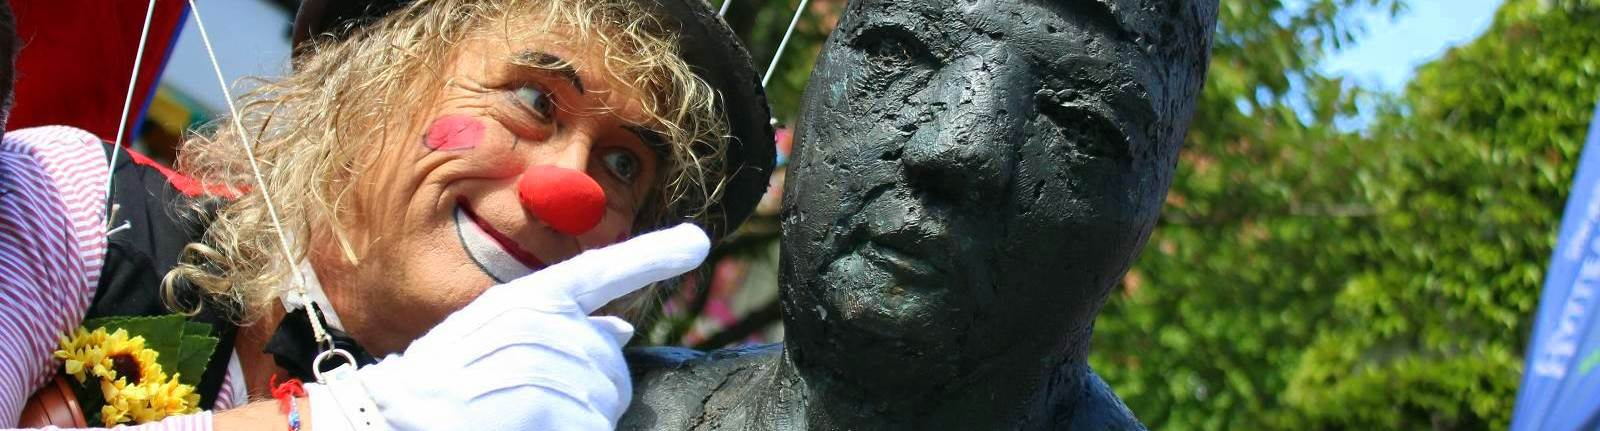 Clown und Haller Willem Denkmal